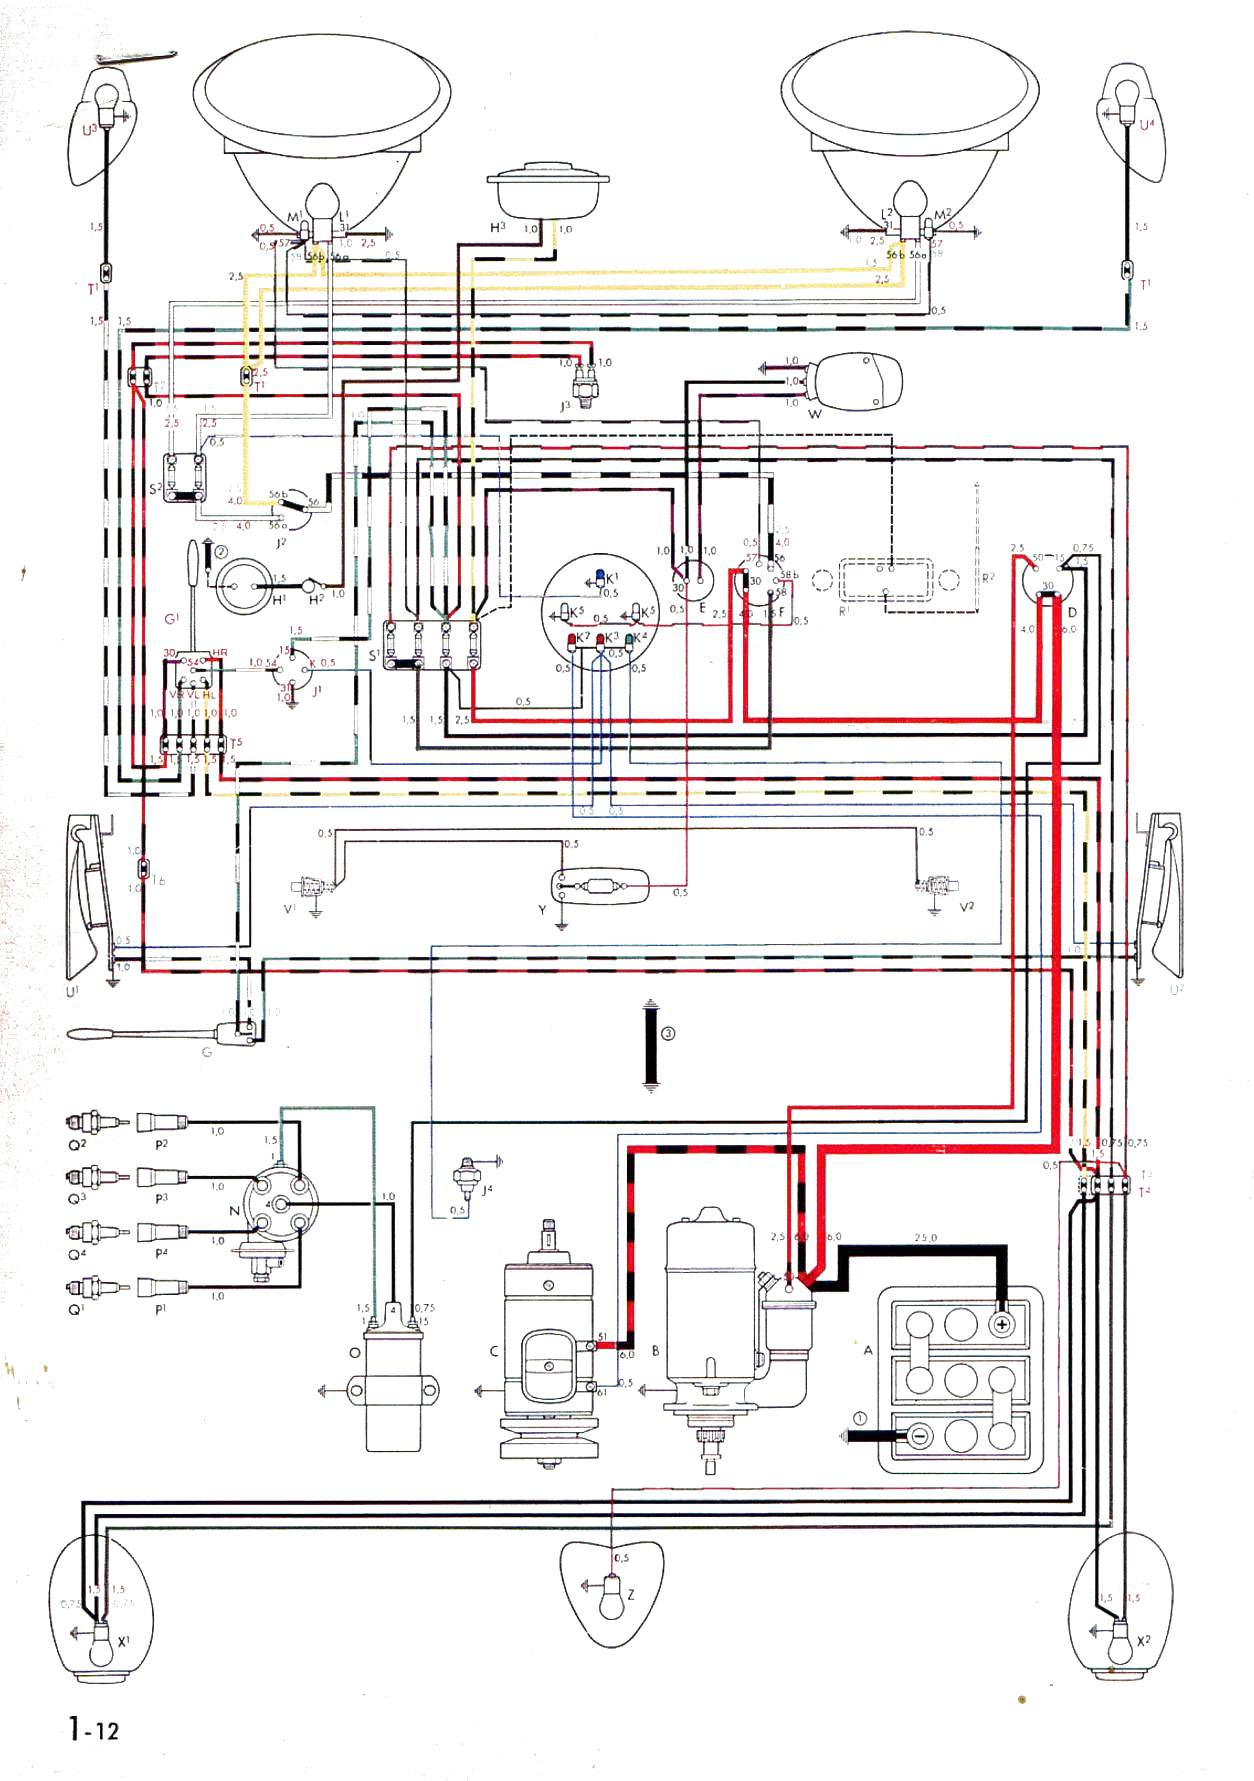 Wiring diagram for 1968 mgb lights fixya wire center vintagebus com vw bus and other wiring diagrams rh vintagebus com wiring diagram for 1968 mustang publicscrutiny Gallery